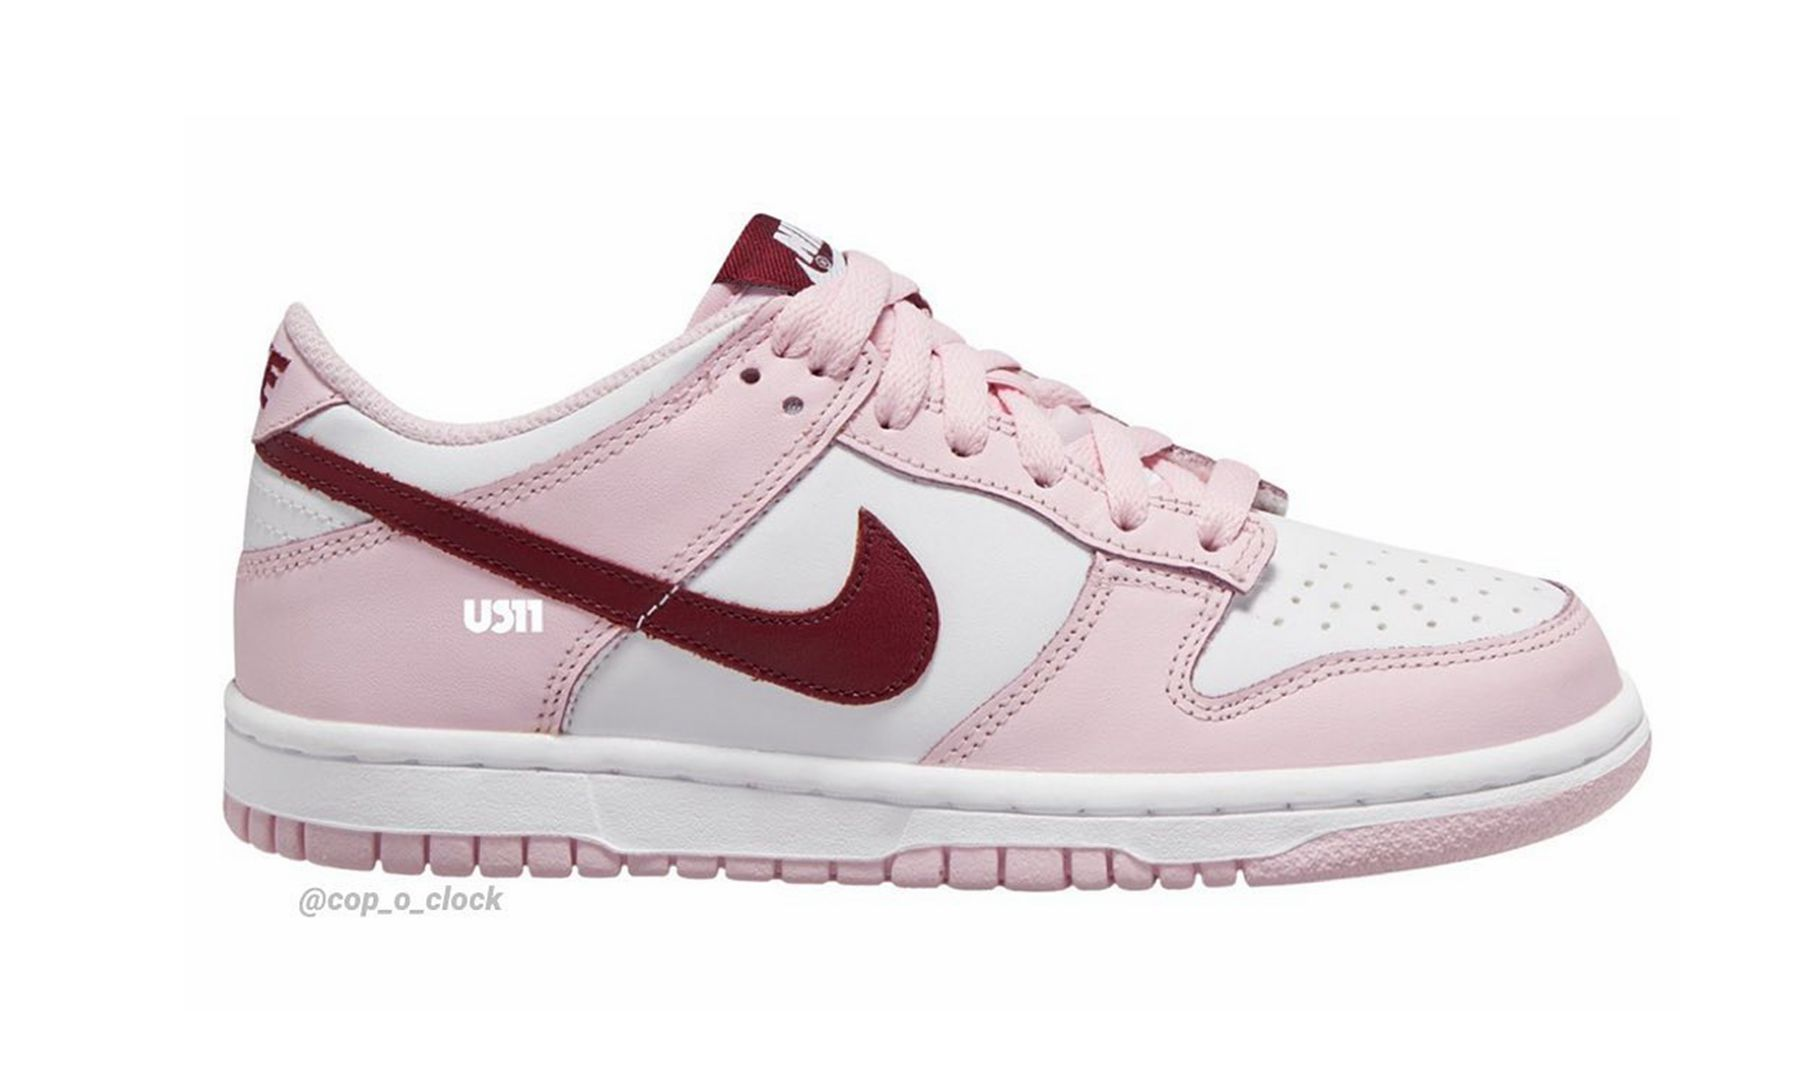 情人节惊喜,Nike Dunk Low「Strawberry Pink」首度亮相